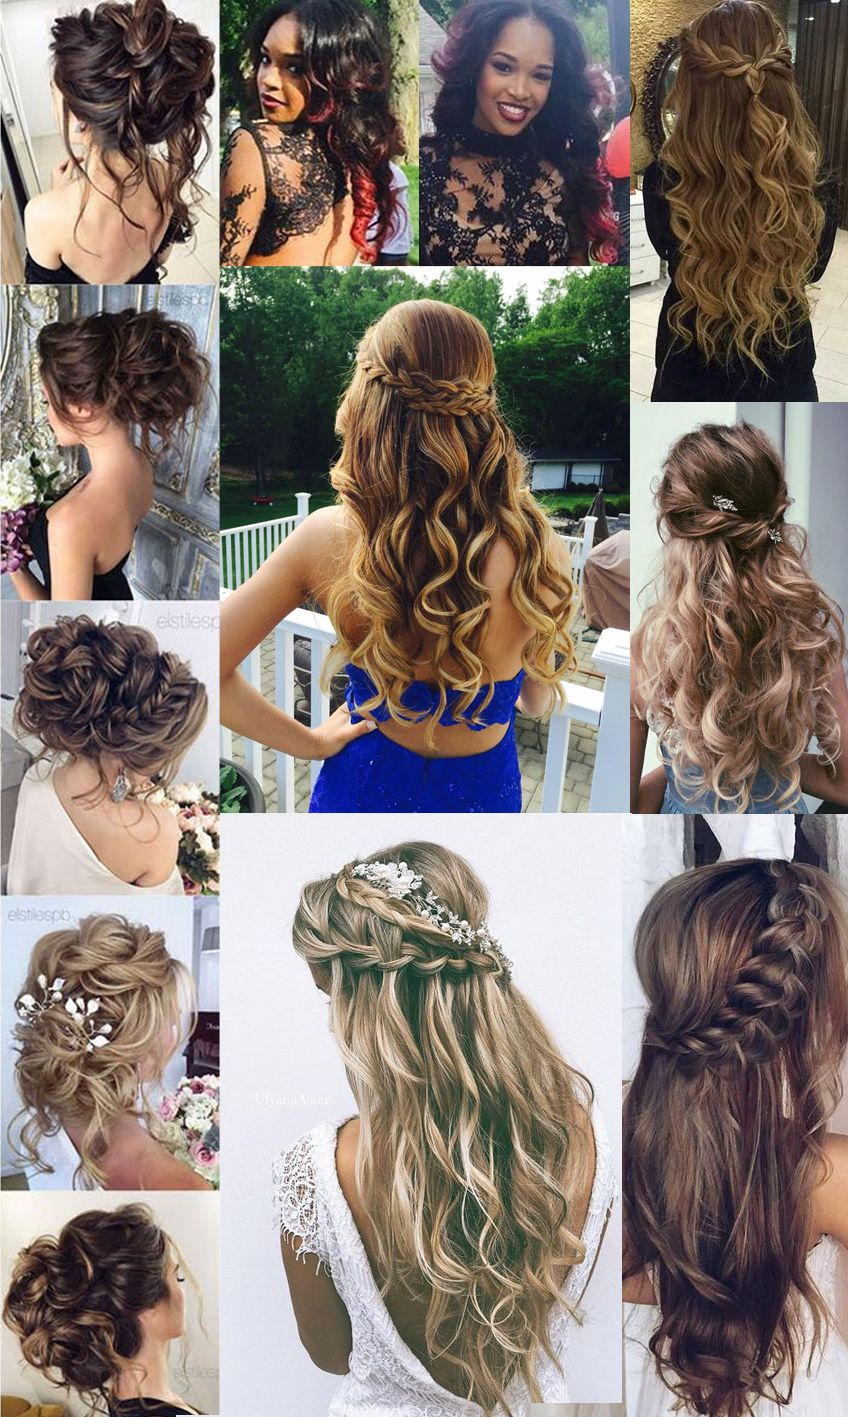 prom hair for party, hairstyle prom for long hair , hairstyle for